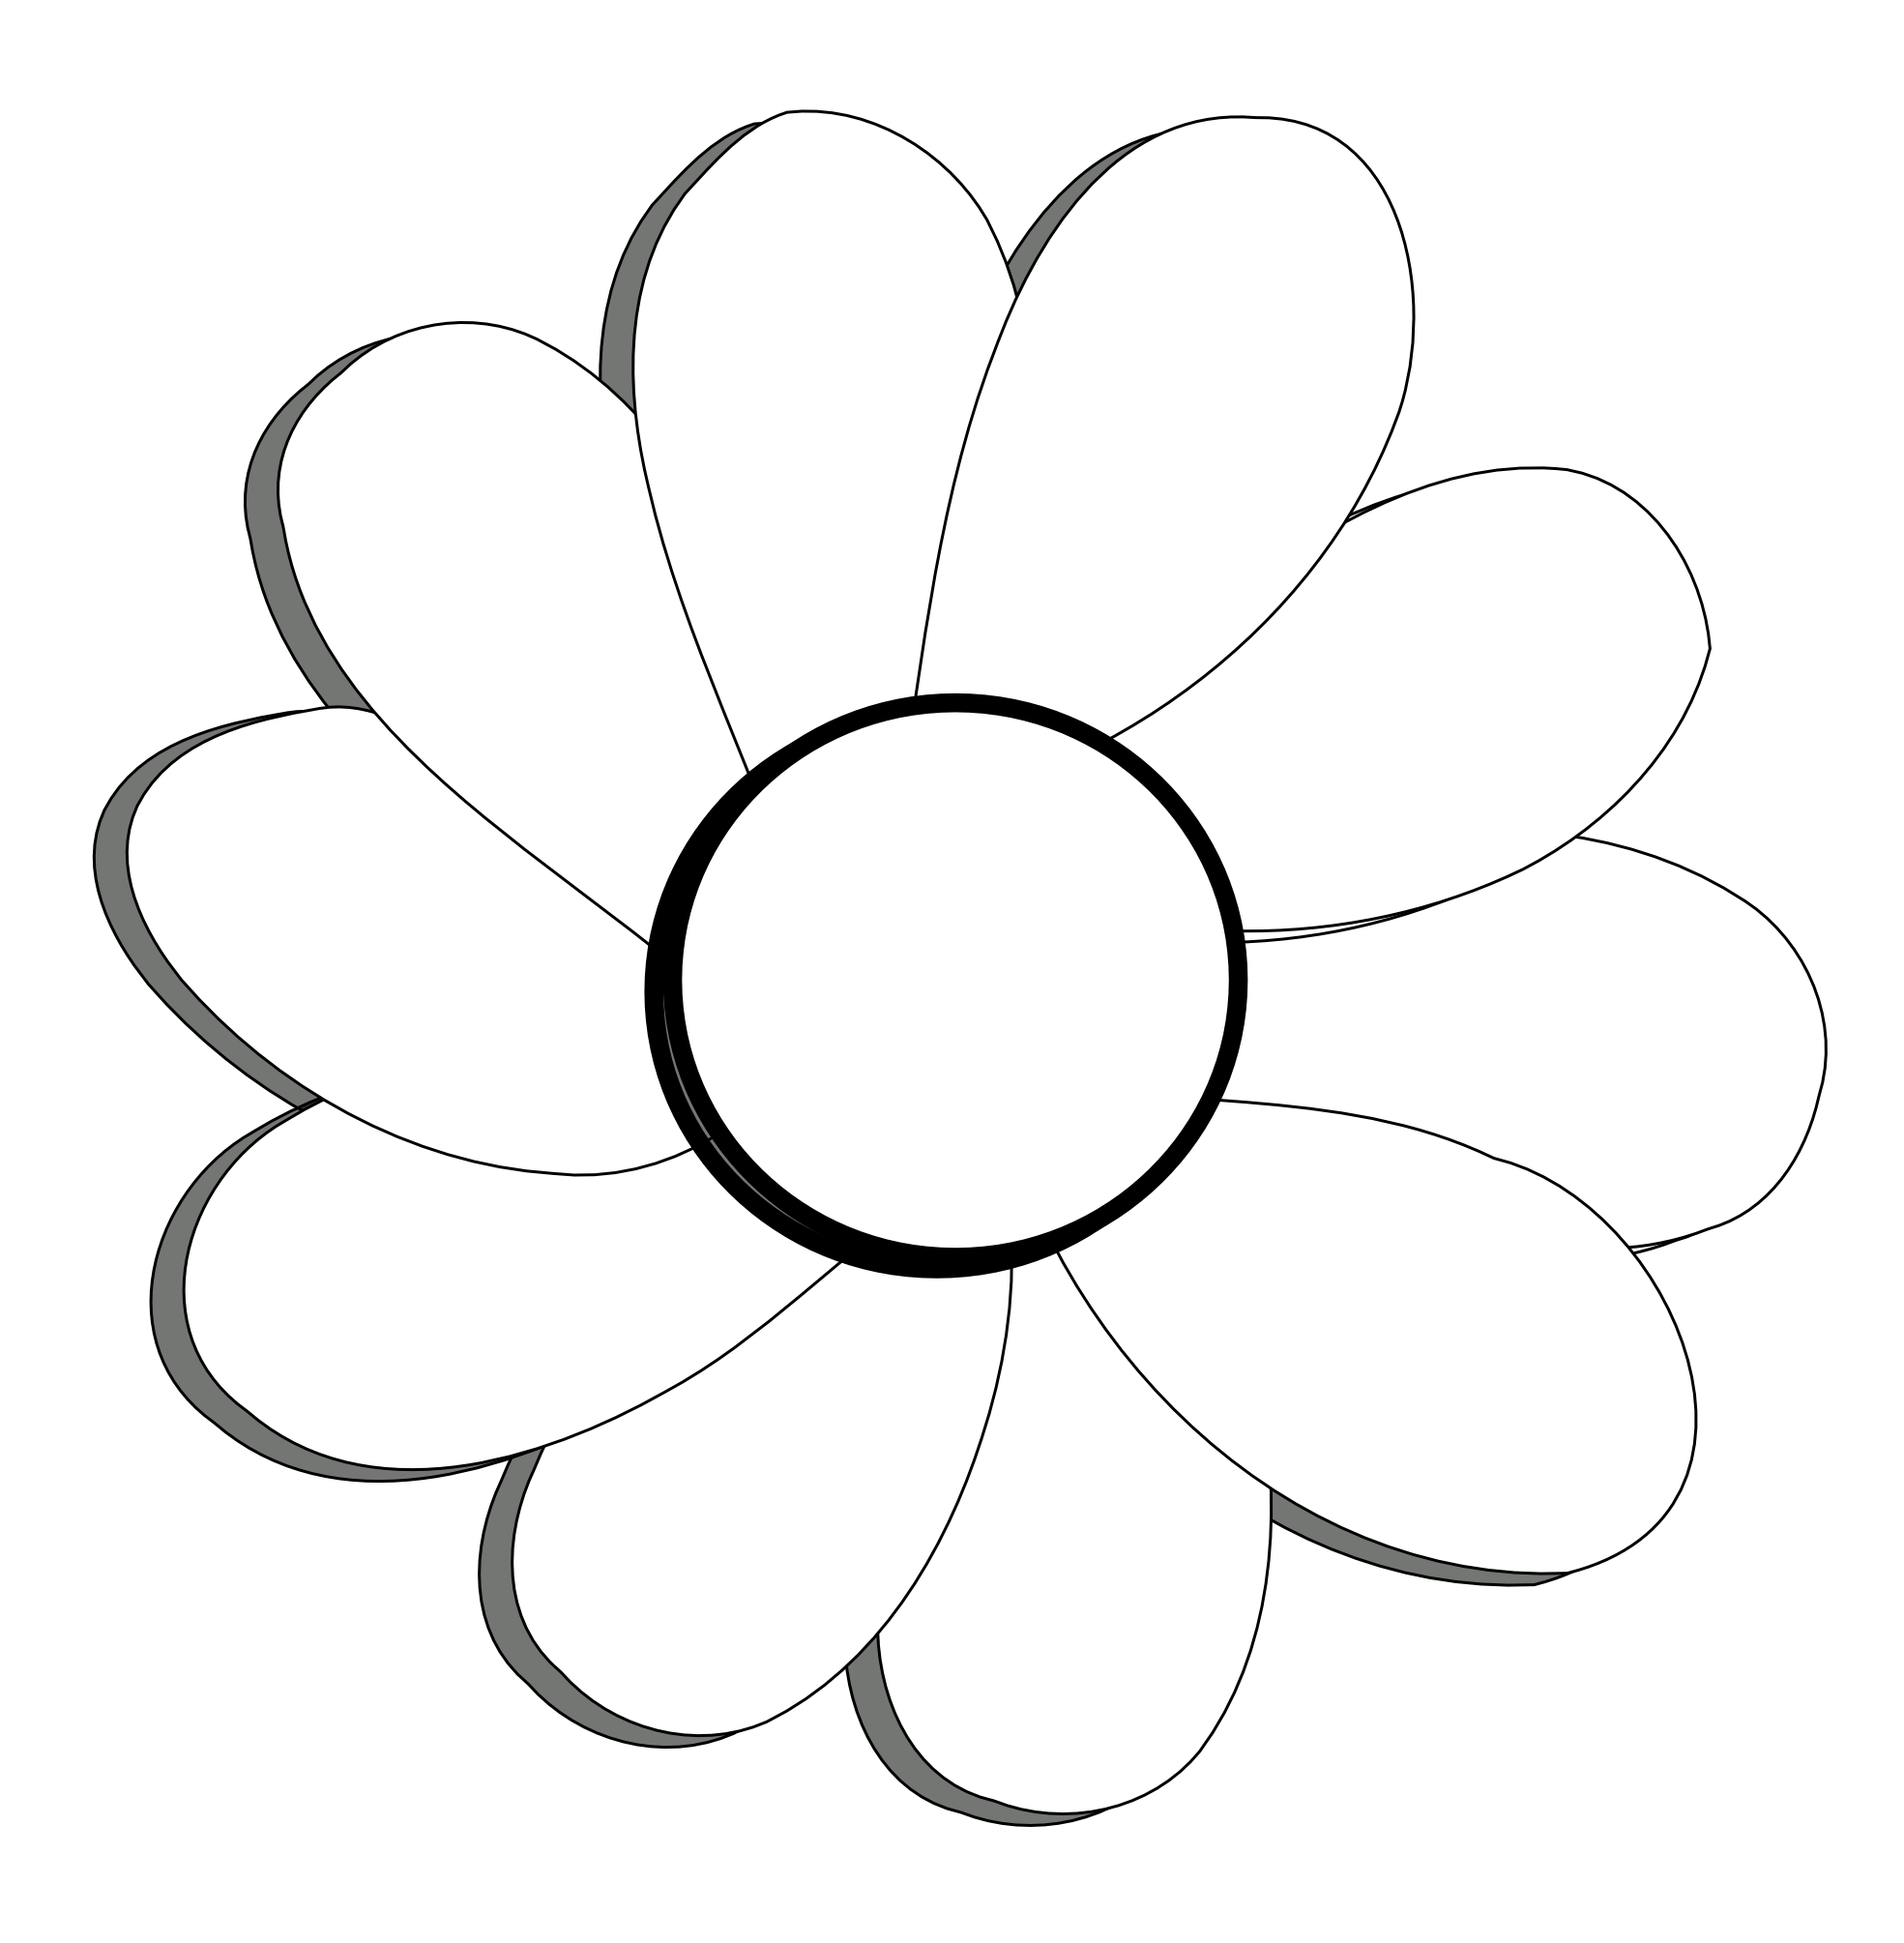 Images Of Black And White Flowers - Cliparts.co